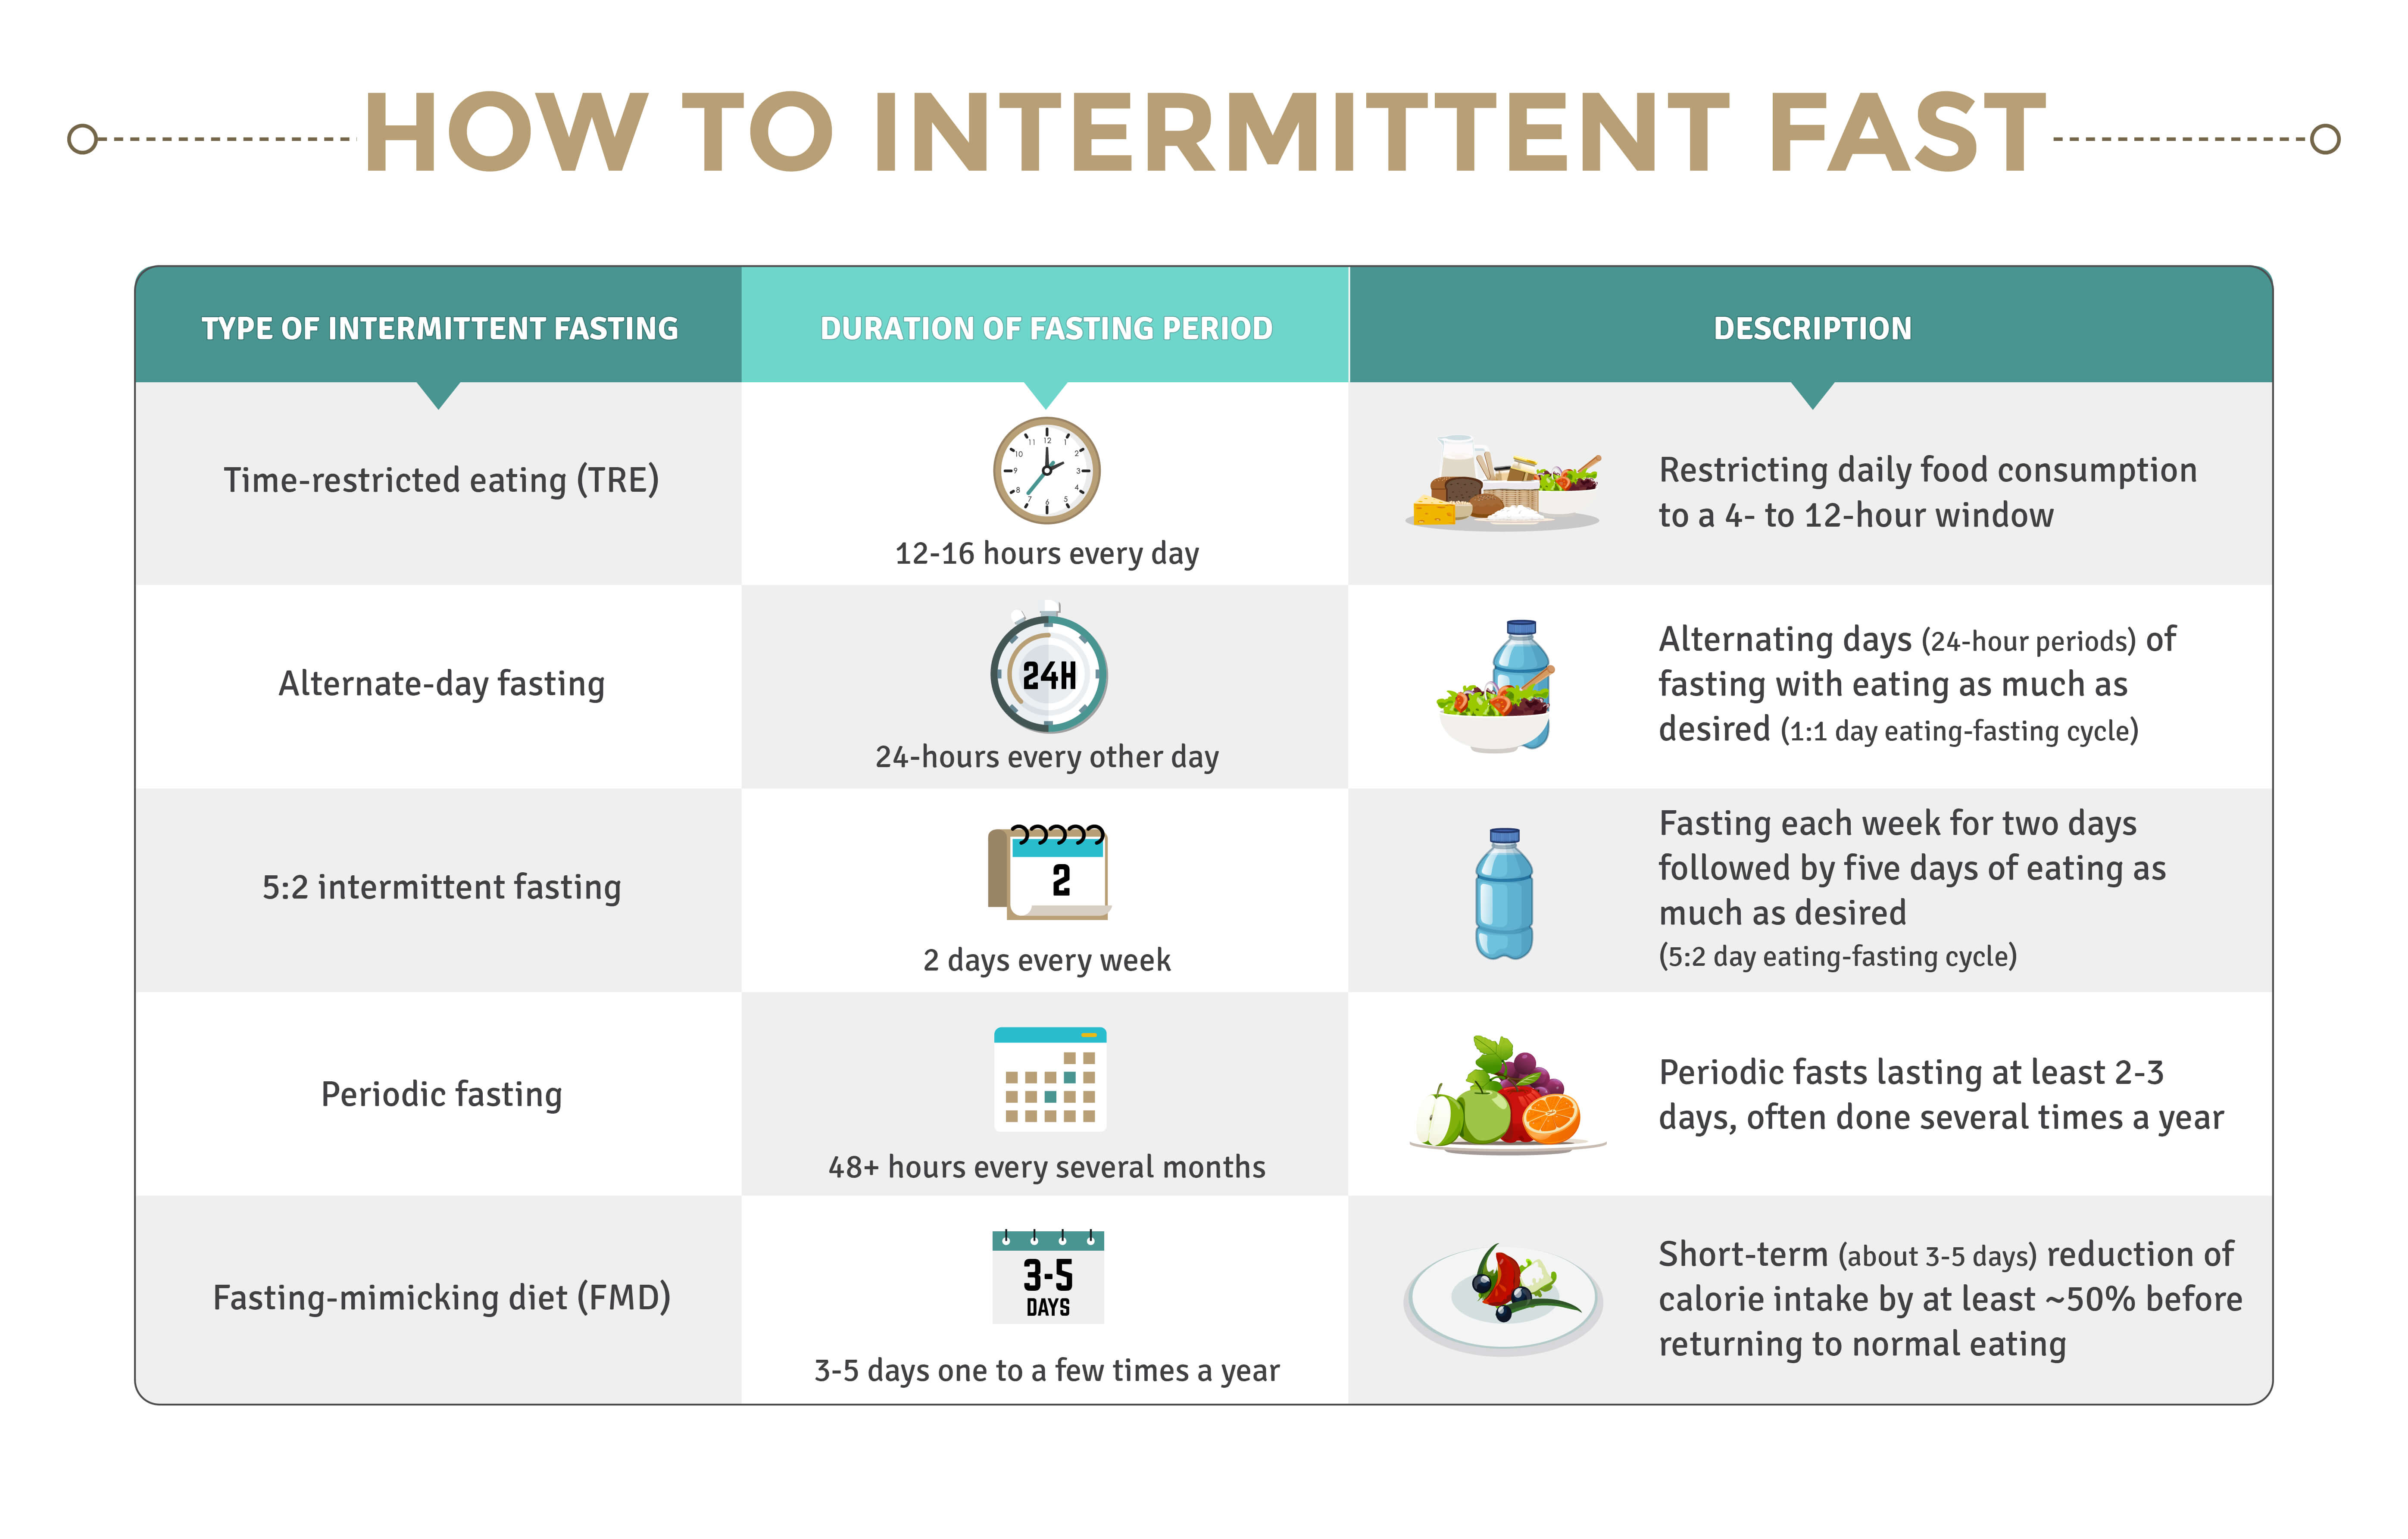 What to Expect While Intermittent Fasting